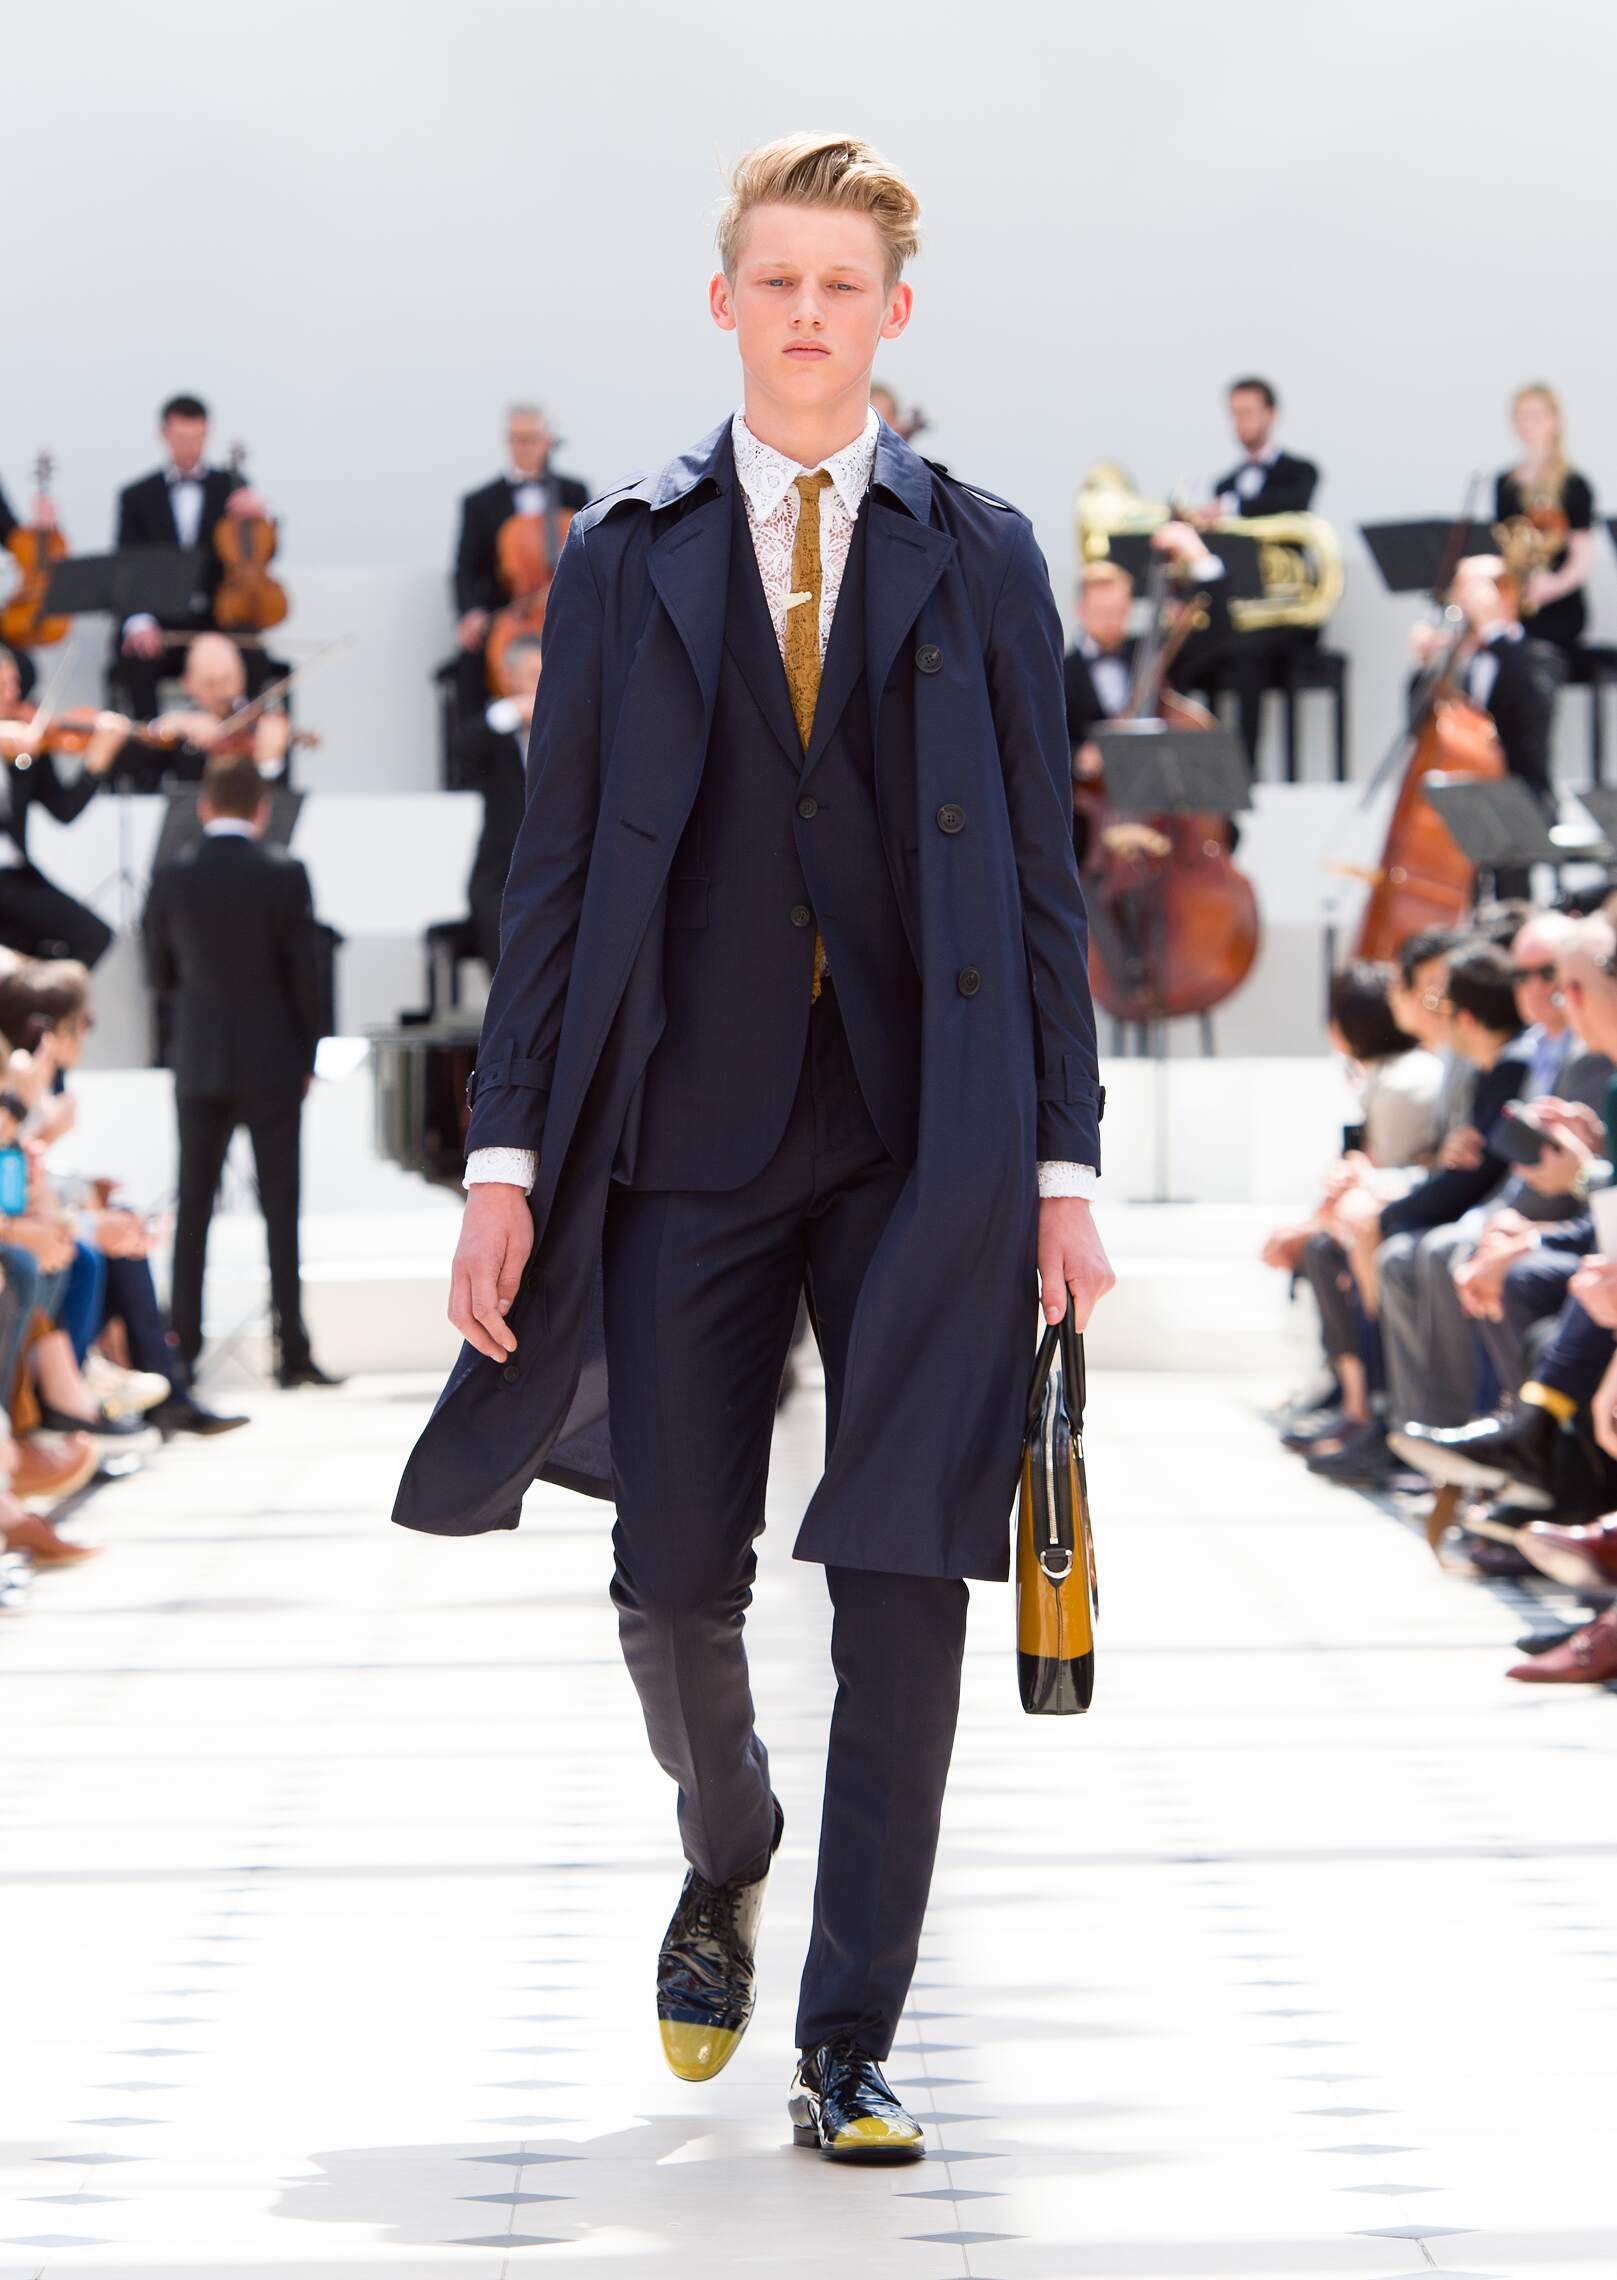 BURBERRY PRORSUM SPRING SUMMER 2016 MEN S COLLECTION – LONDON FASHION WEEK b6b4b80eef5db